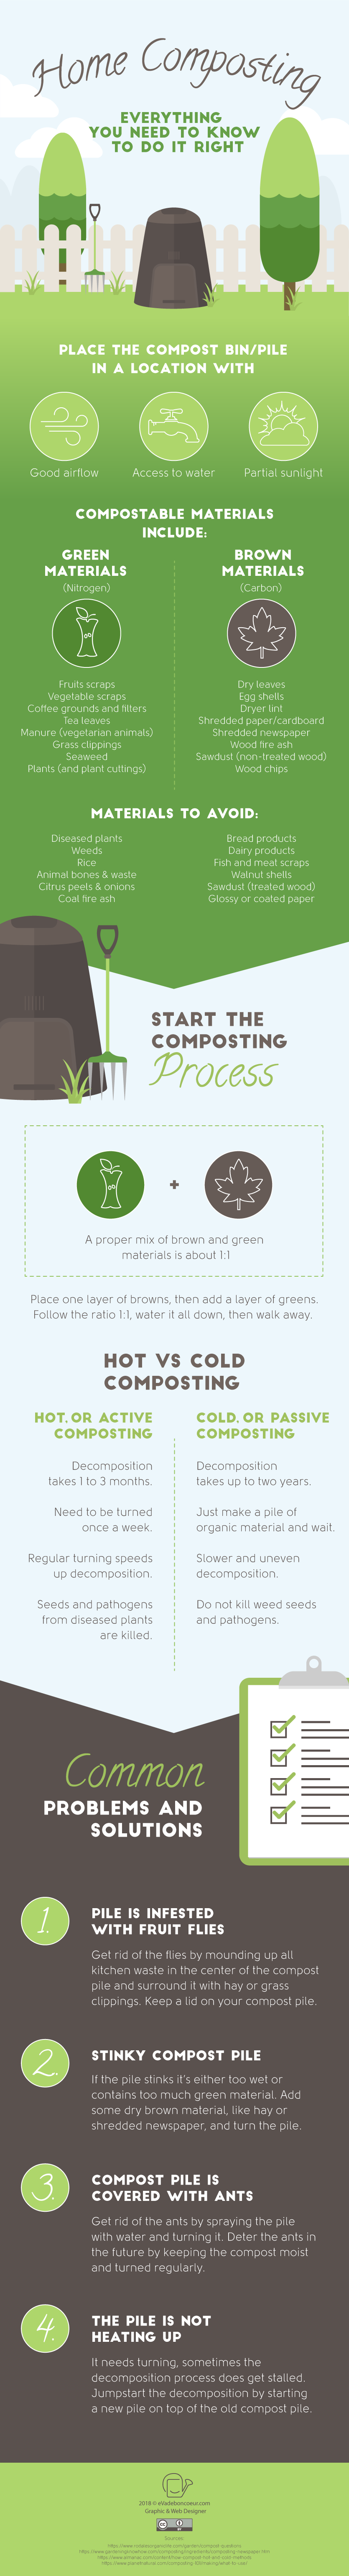 home-composting-infographic